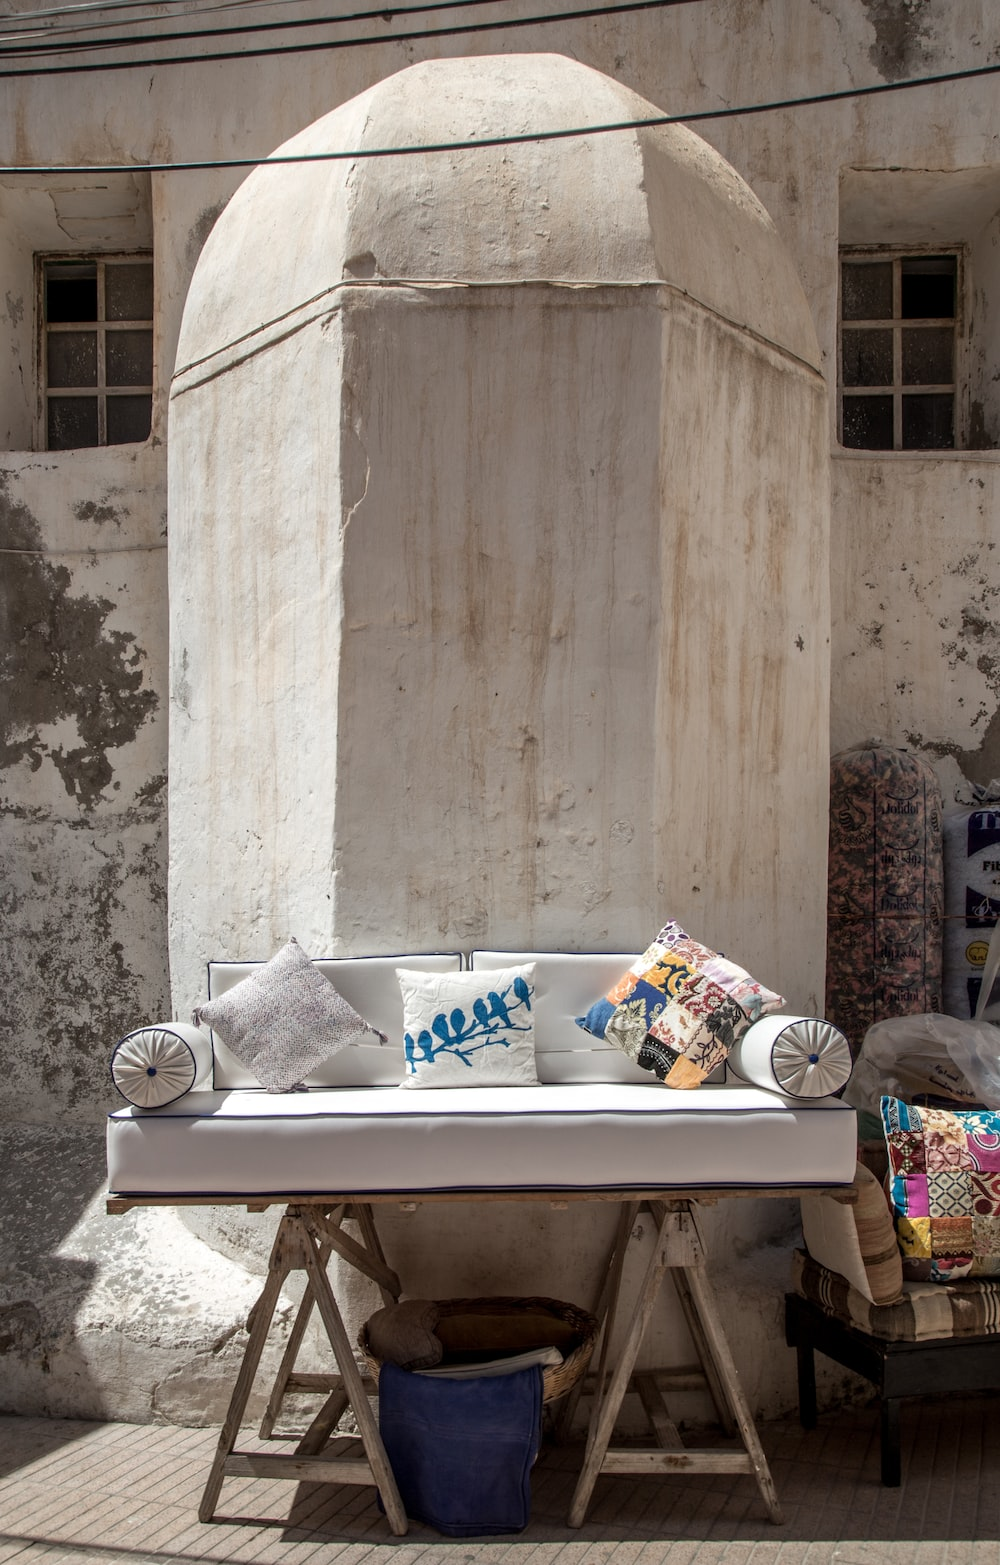 sofa with throw pillows near concrete structure